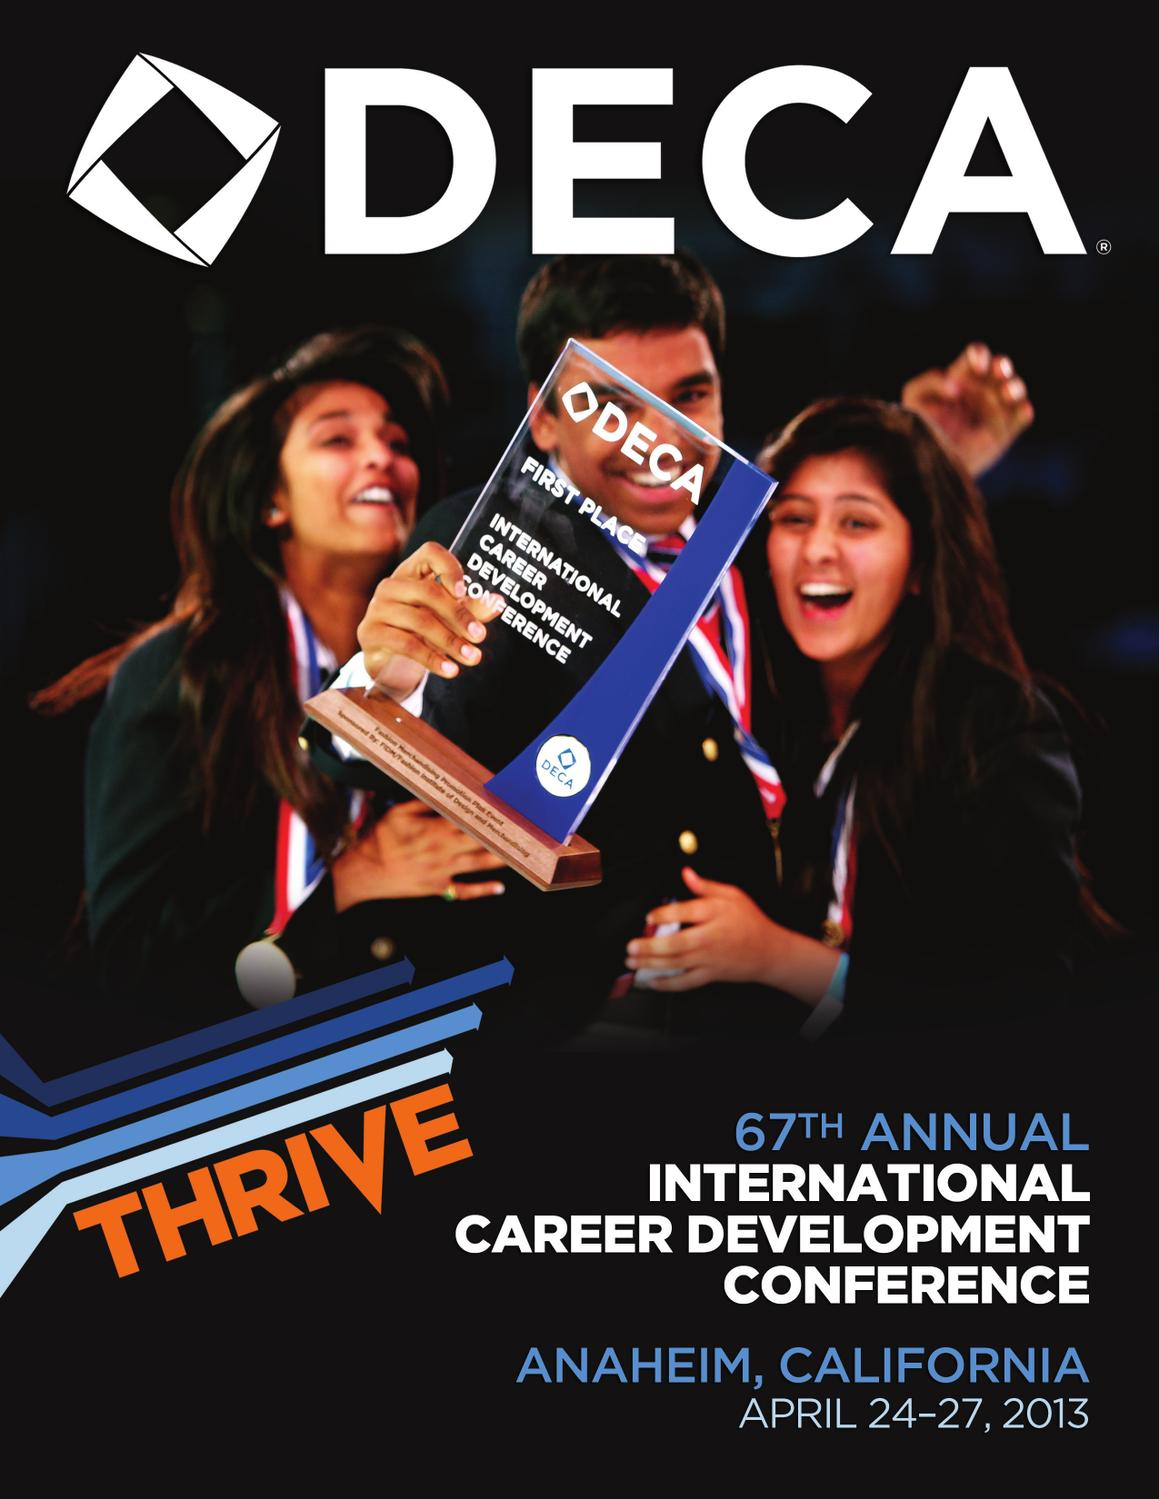 Deca 2013 International Career Development Conference: associates degree in fashion design online